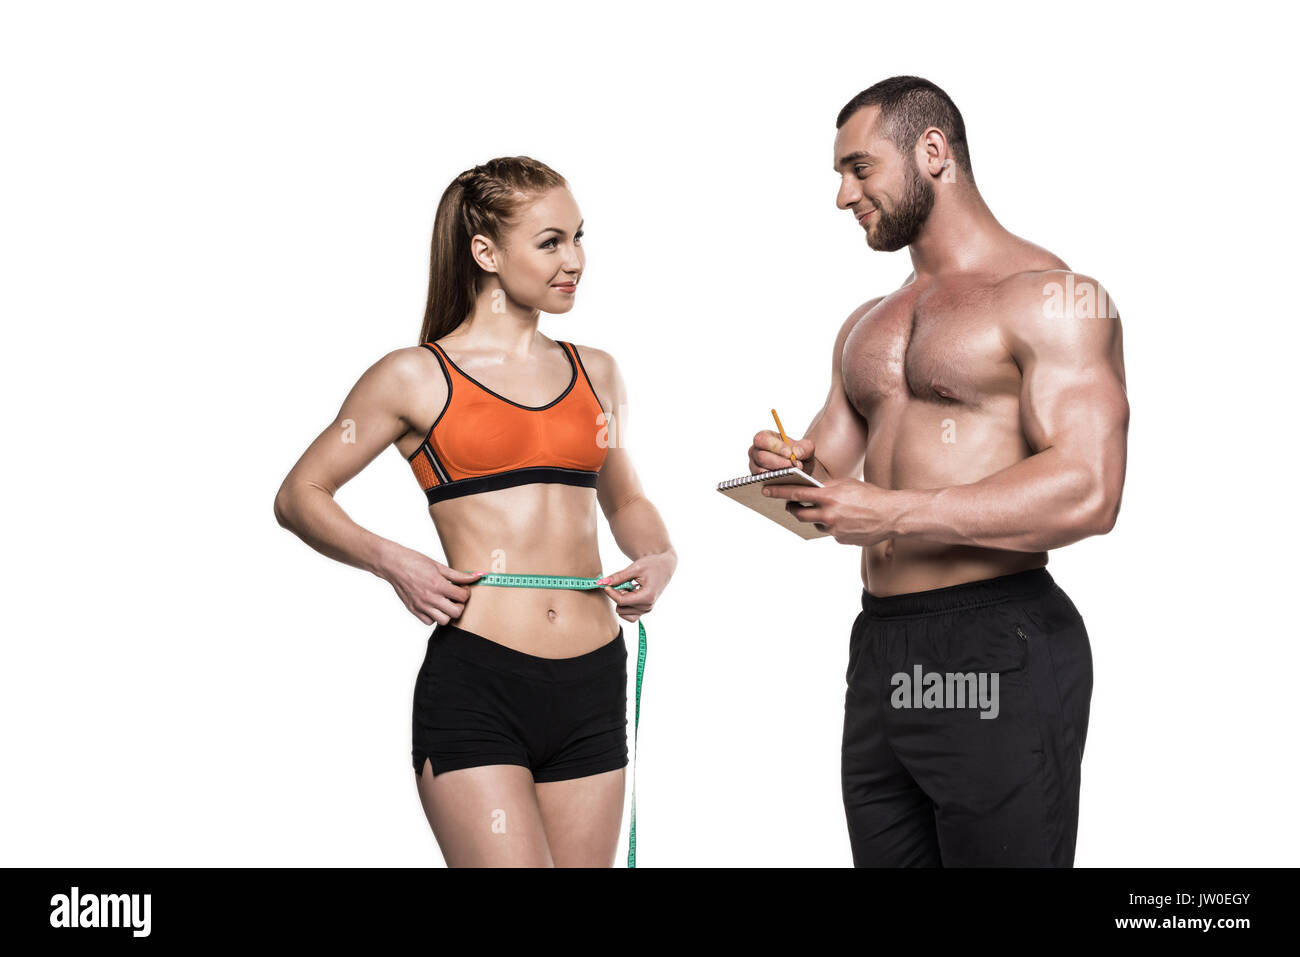 personal trainer writing in notepad while sportswoman measuring her waistline isolated on white - Stock Image